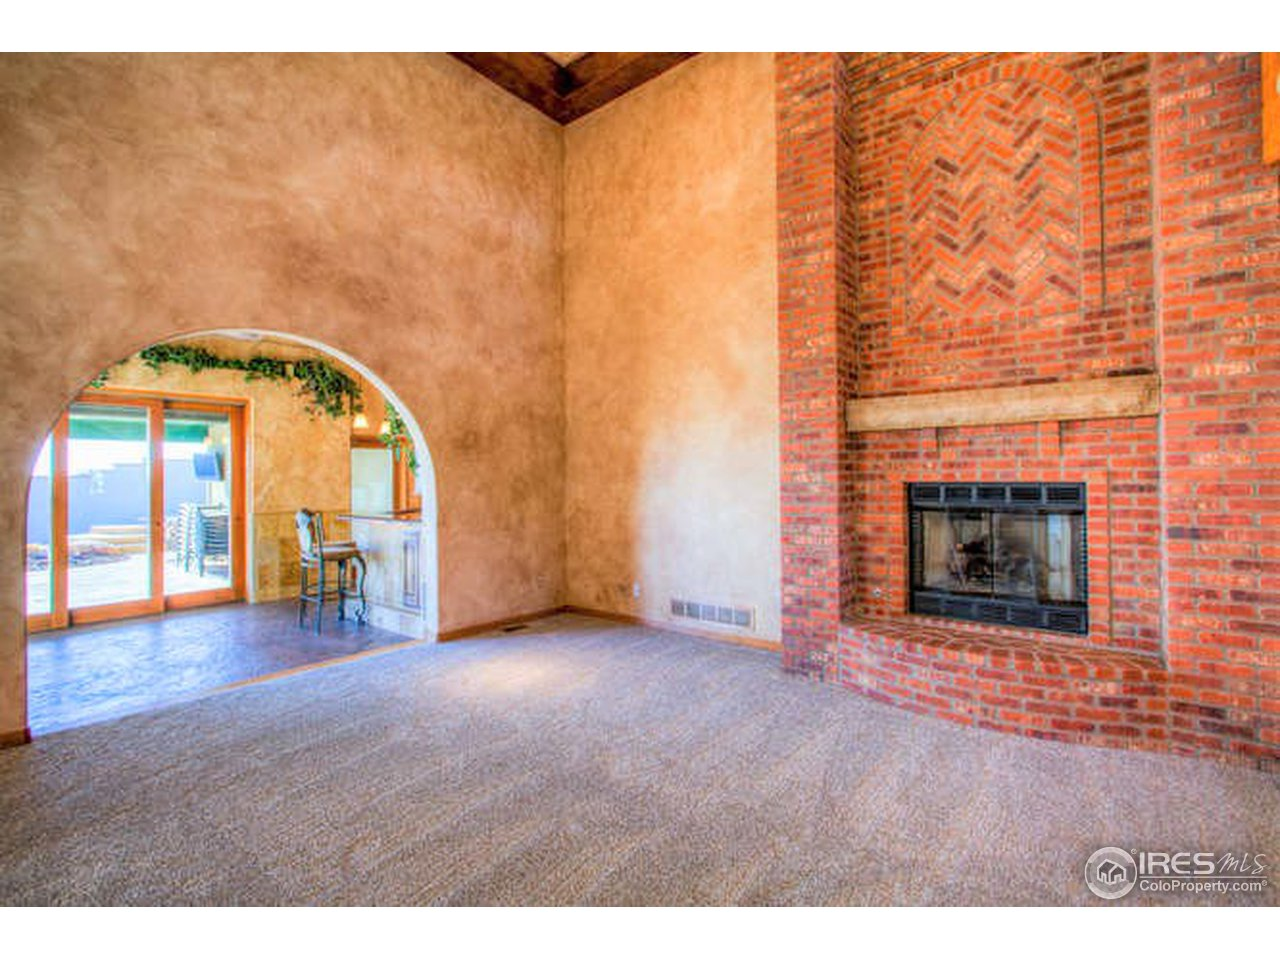 Grand floor to ceiling brick fireplace